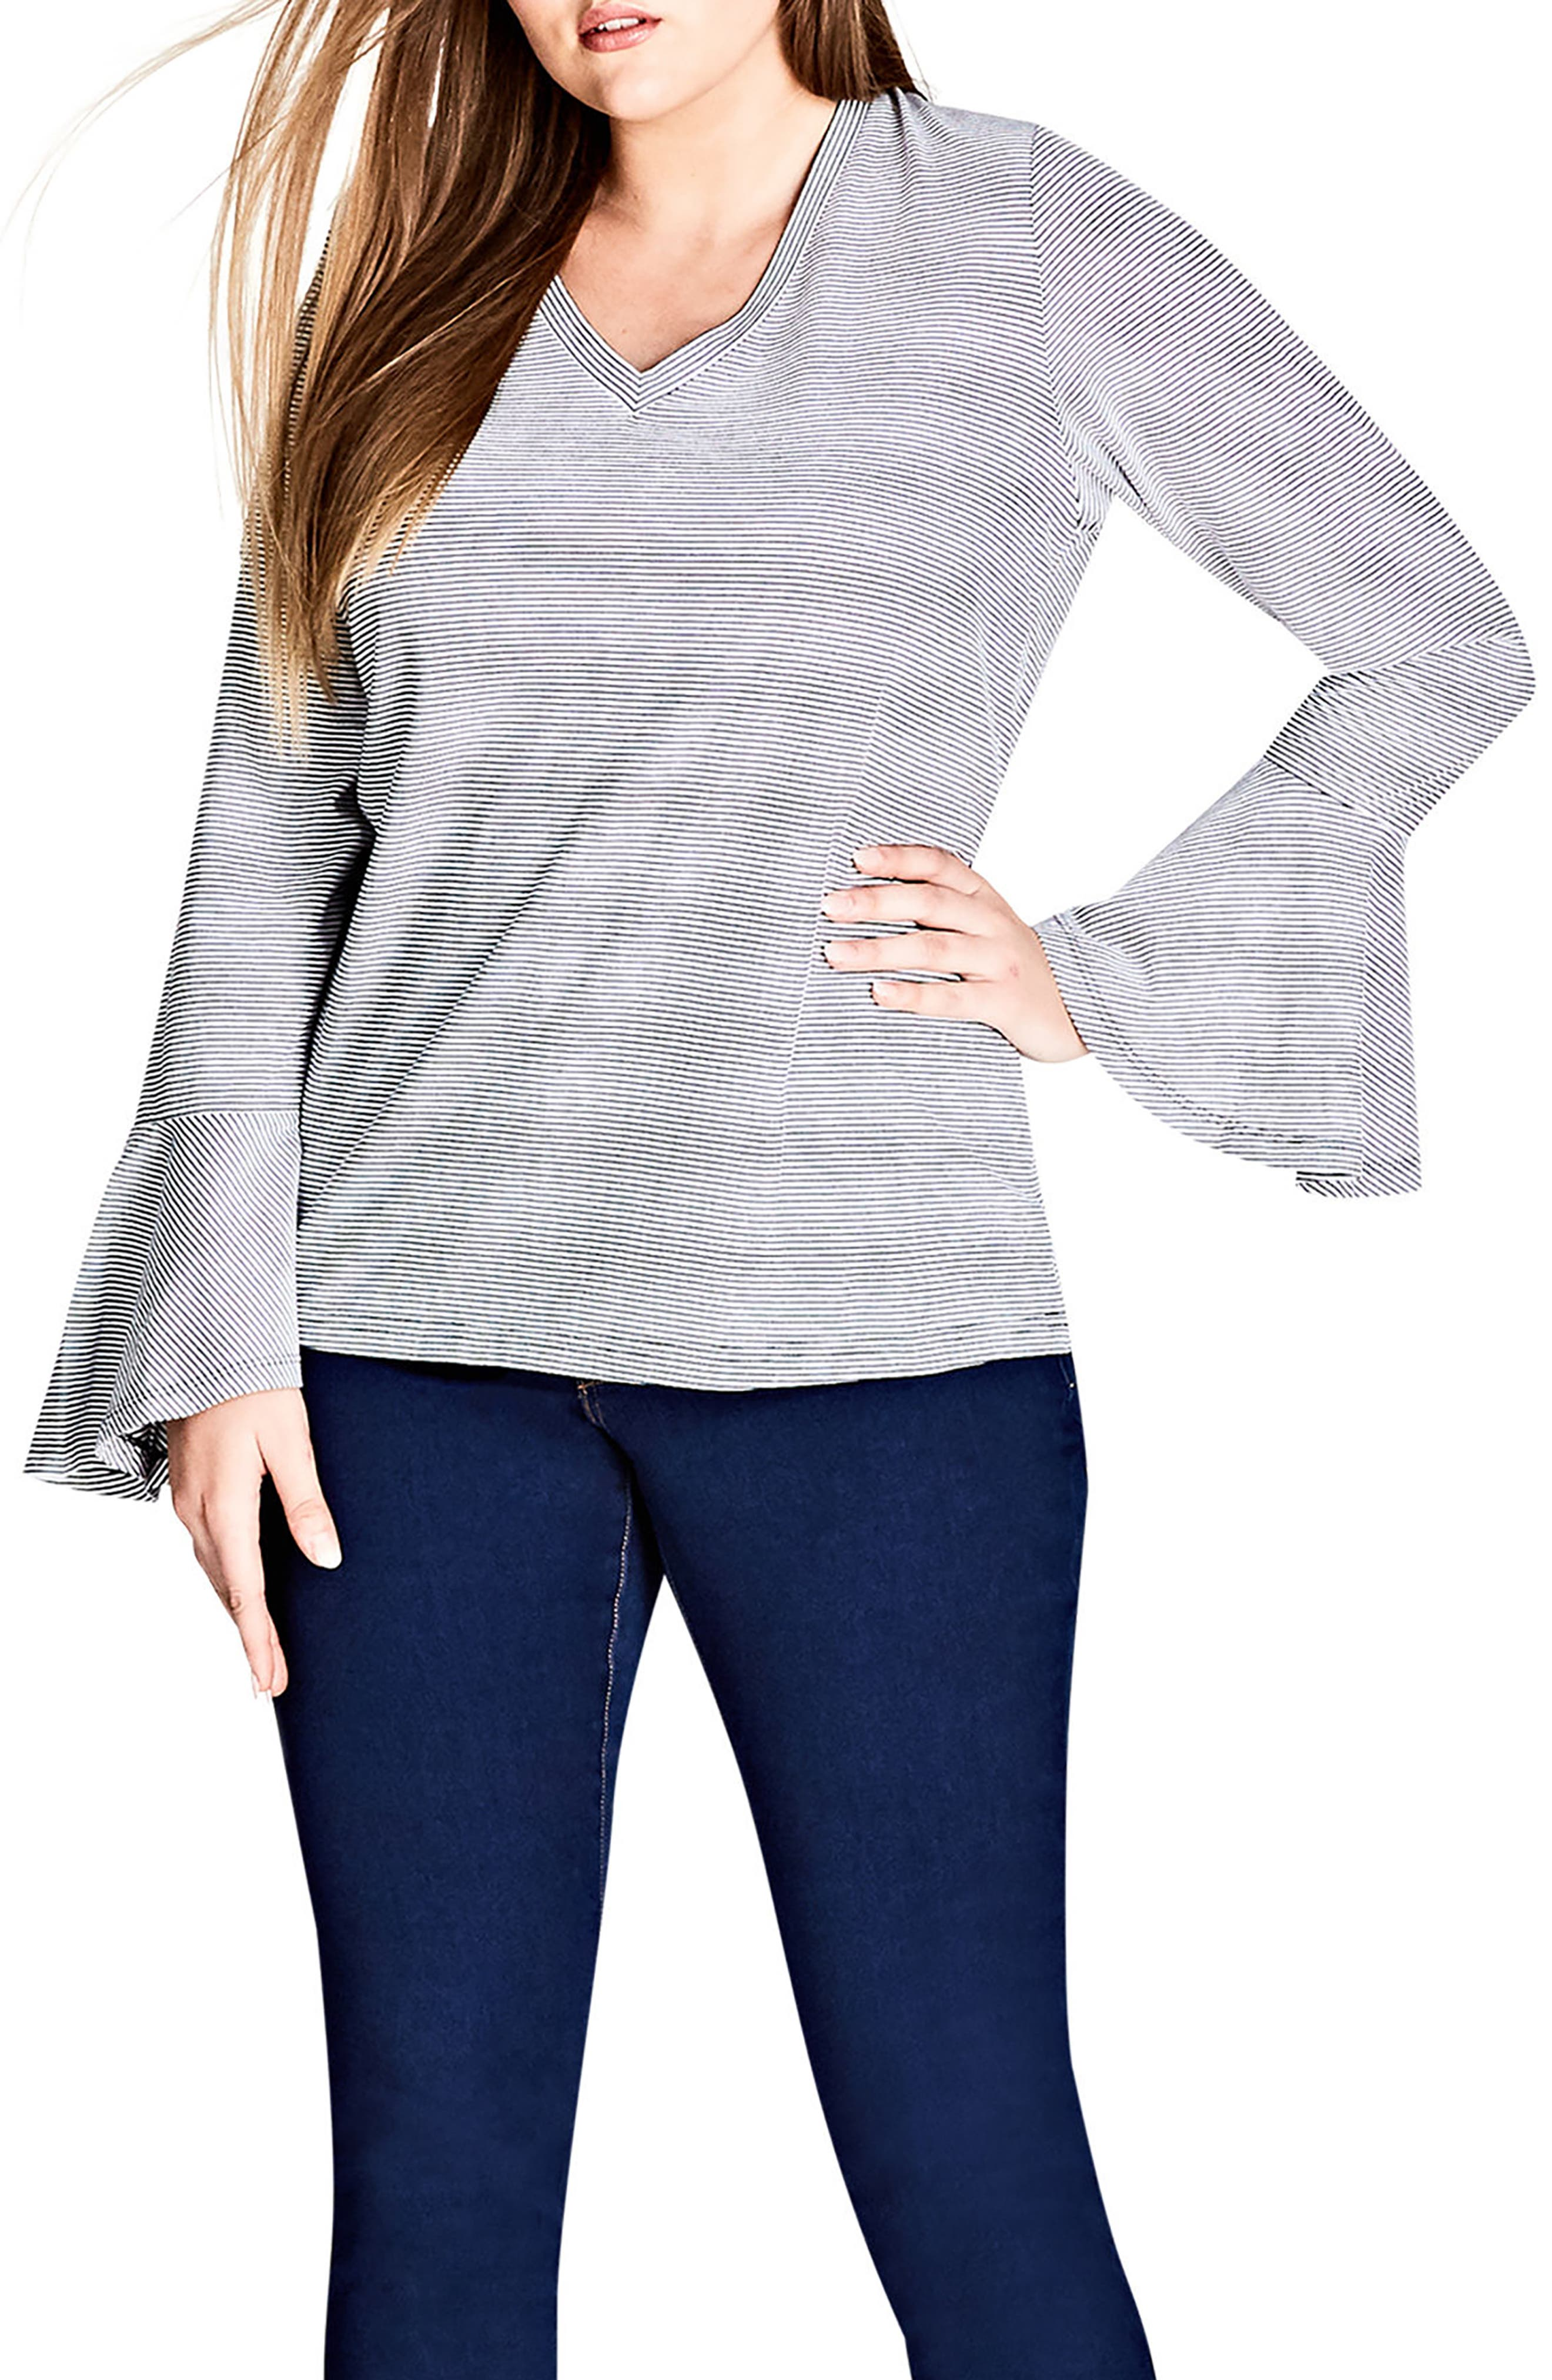 Alternate Image 1 Selected - City Chic Bell Sleeve Stripe V-Neck Top (Plus Size)